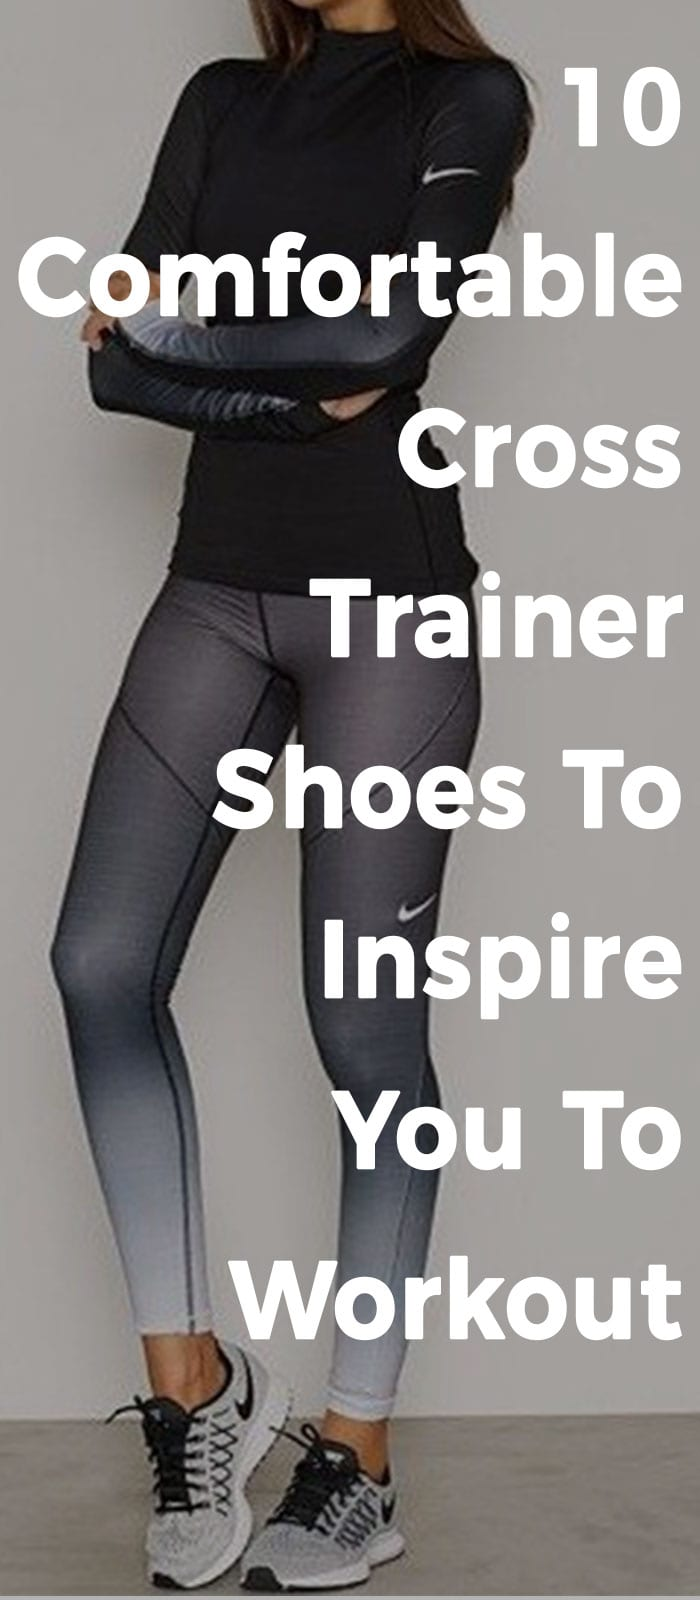 10 Comfortable Cross Trainer Shoes To Inspire You To Workout10 Comfortable Cross Trainer Shoes To Inspire You To Workout